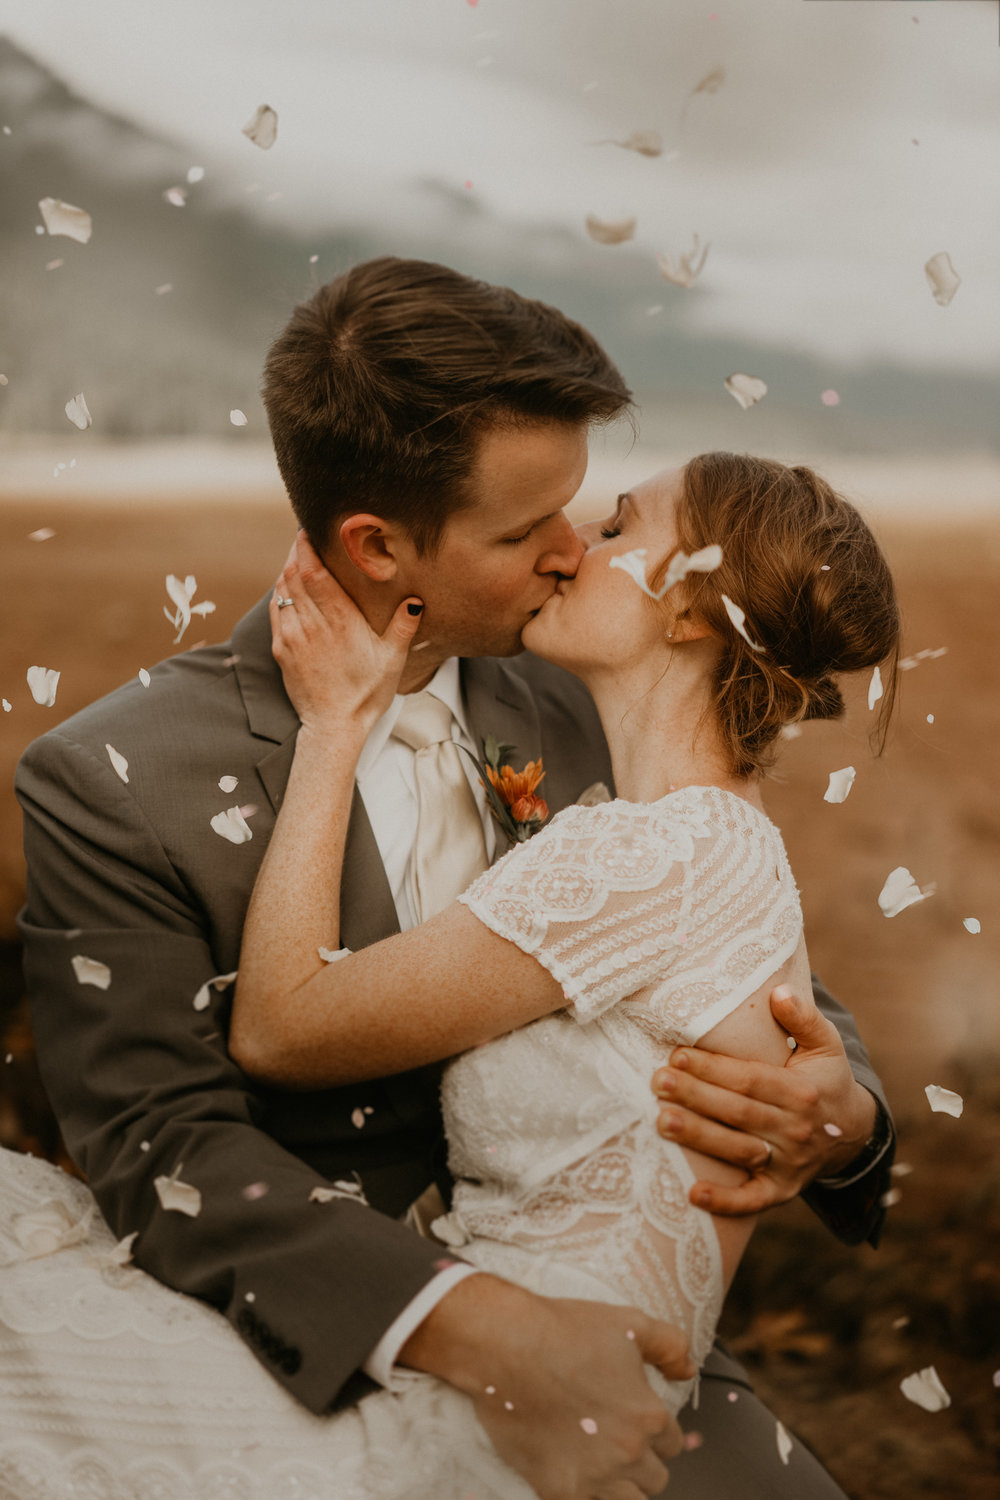 Beautiful moment between the newly weds by Olympic National Park Lake Cushman